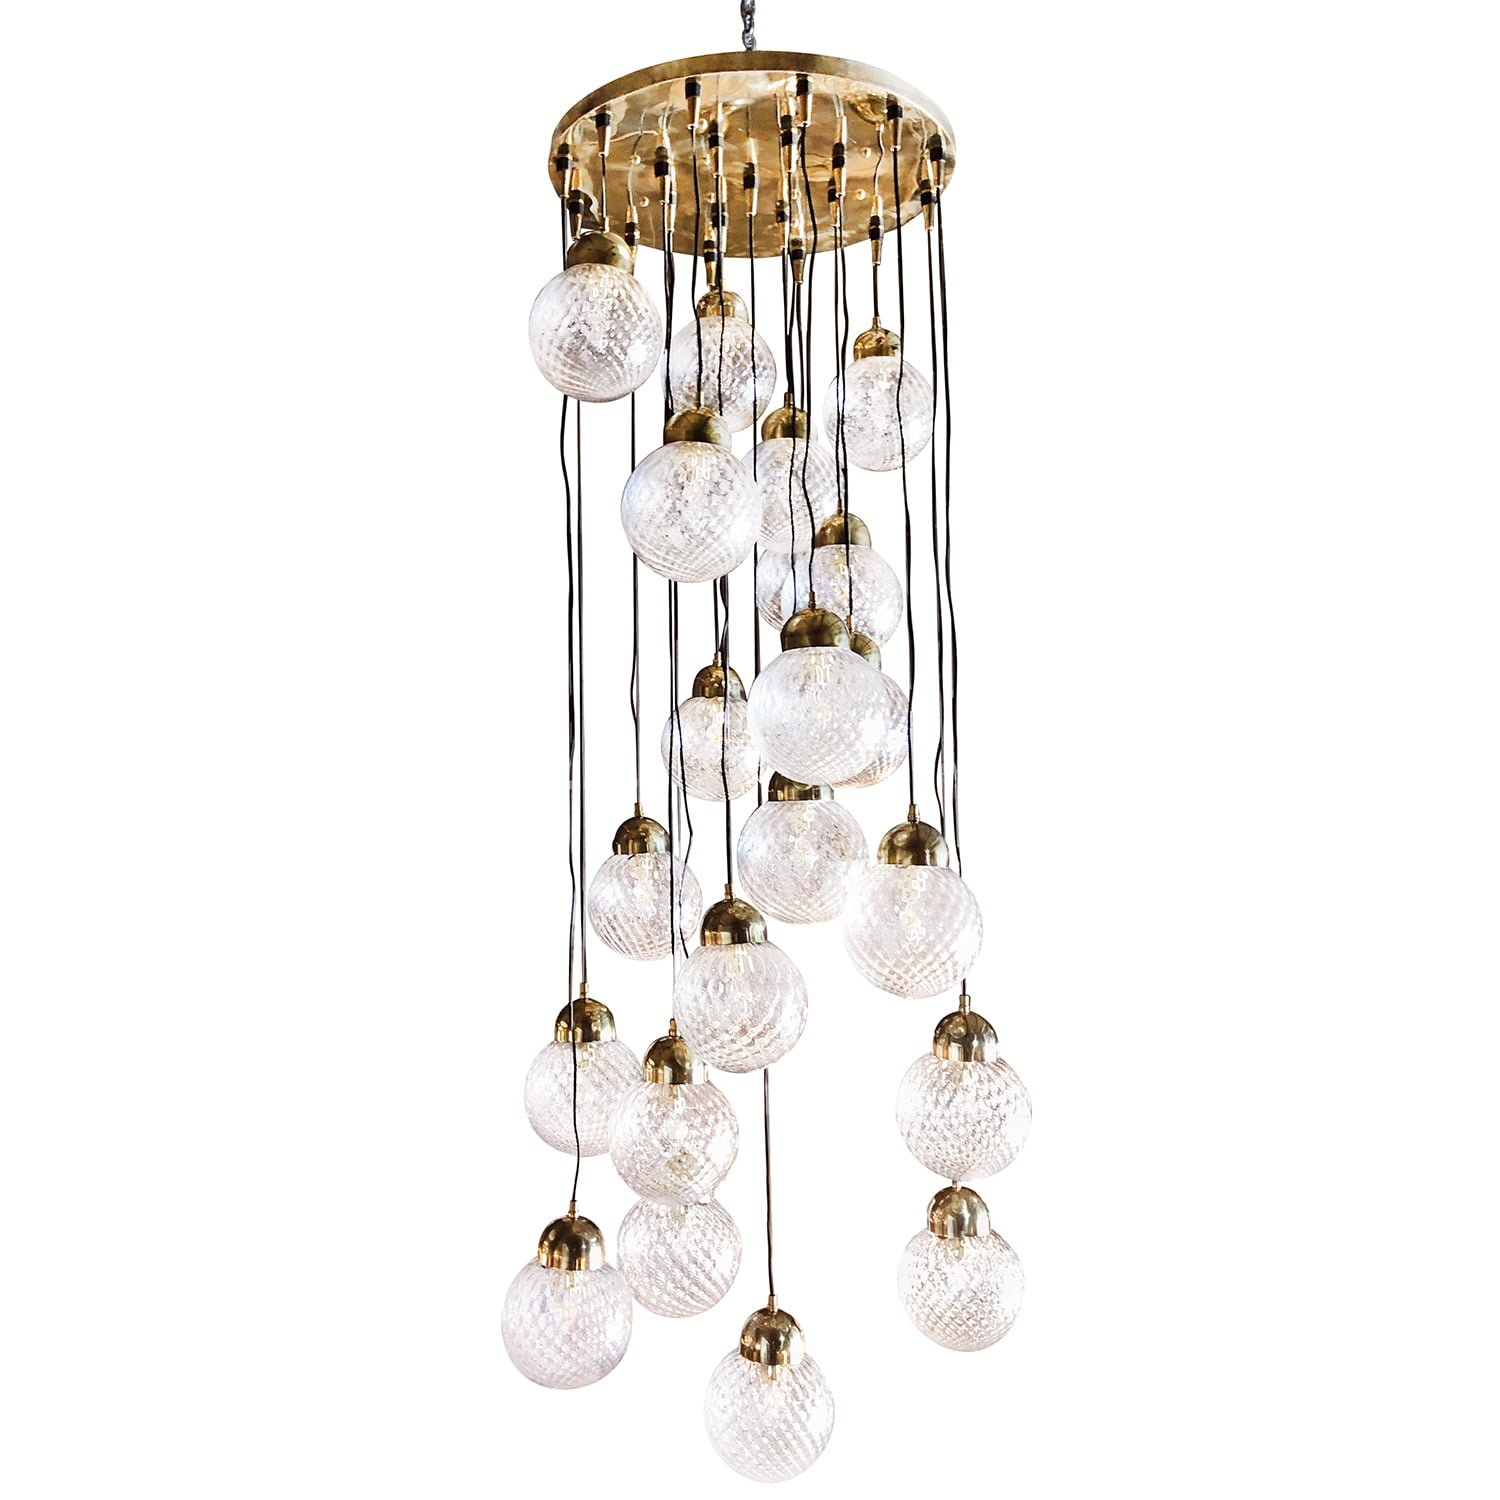 20th Century Italian Glass Shade Chandelier by Nardo